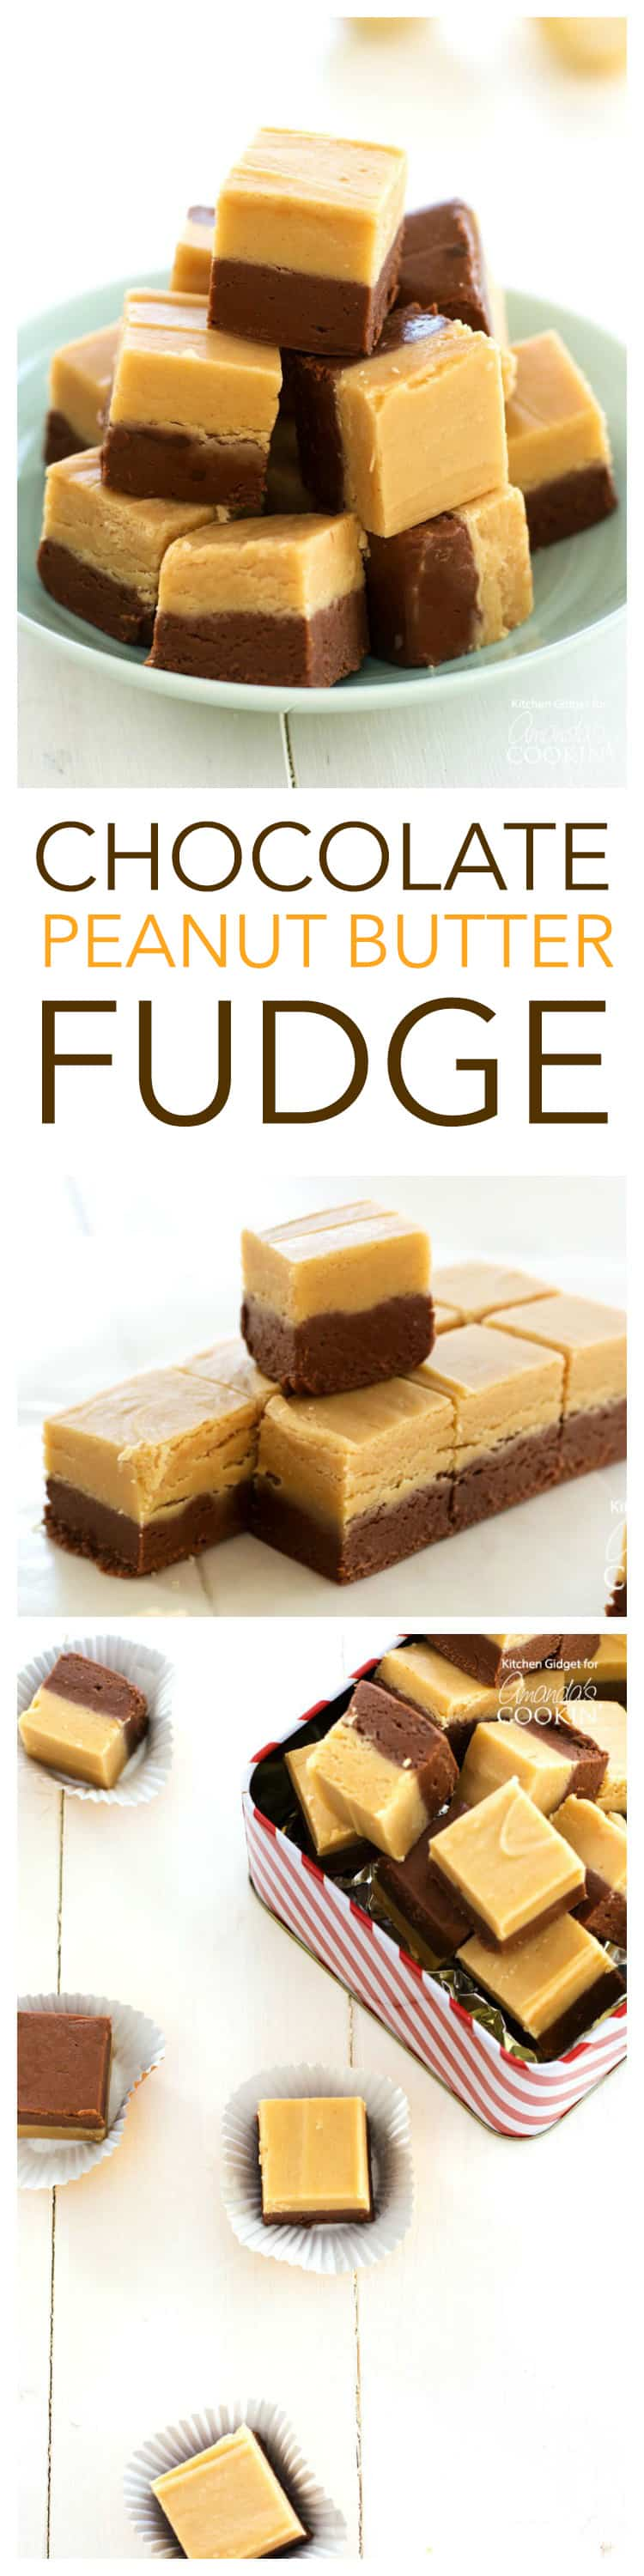 Chocolate Peanut Butter Fudge: easy homemade fudge